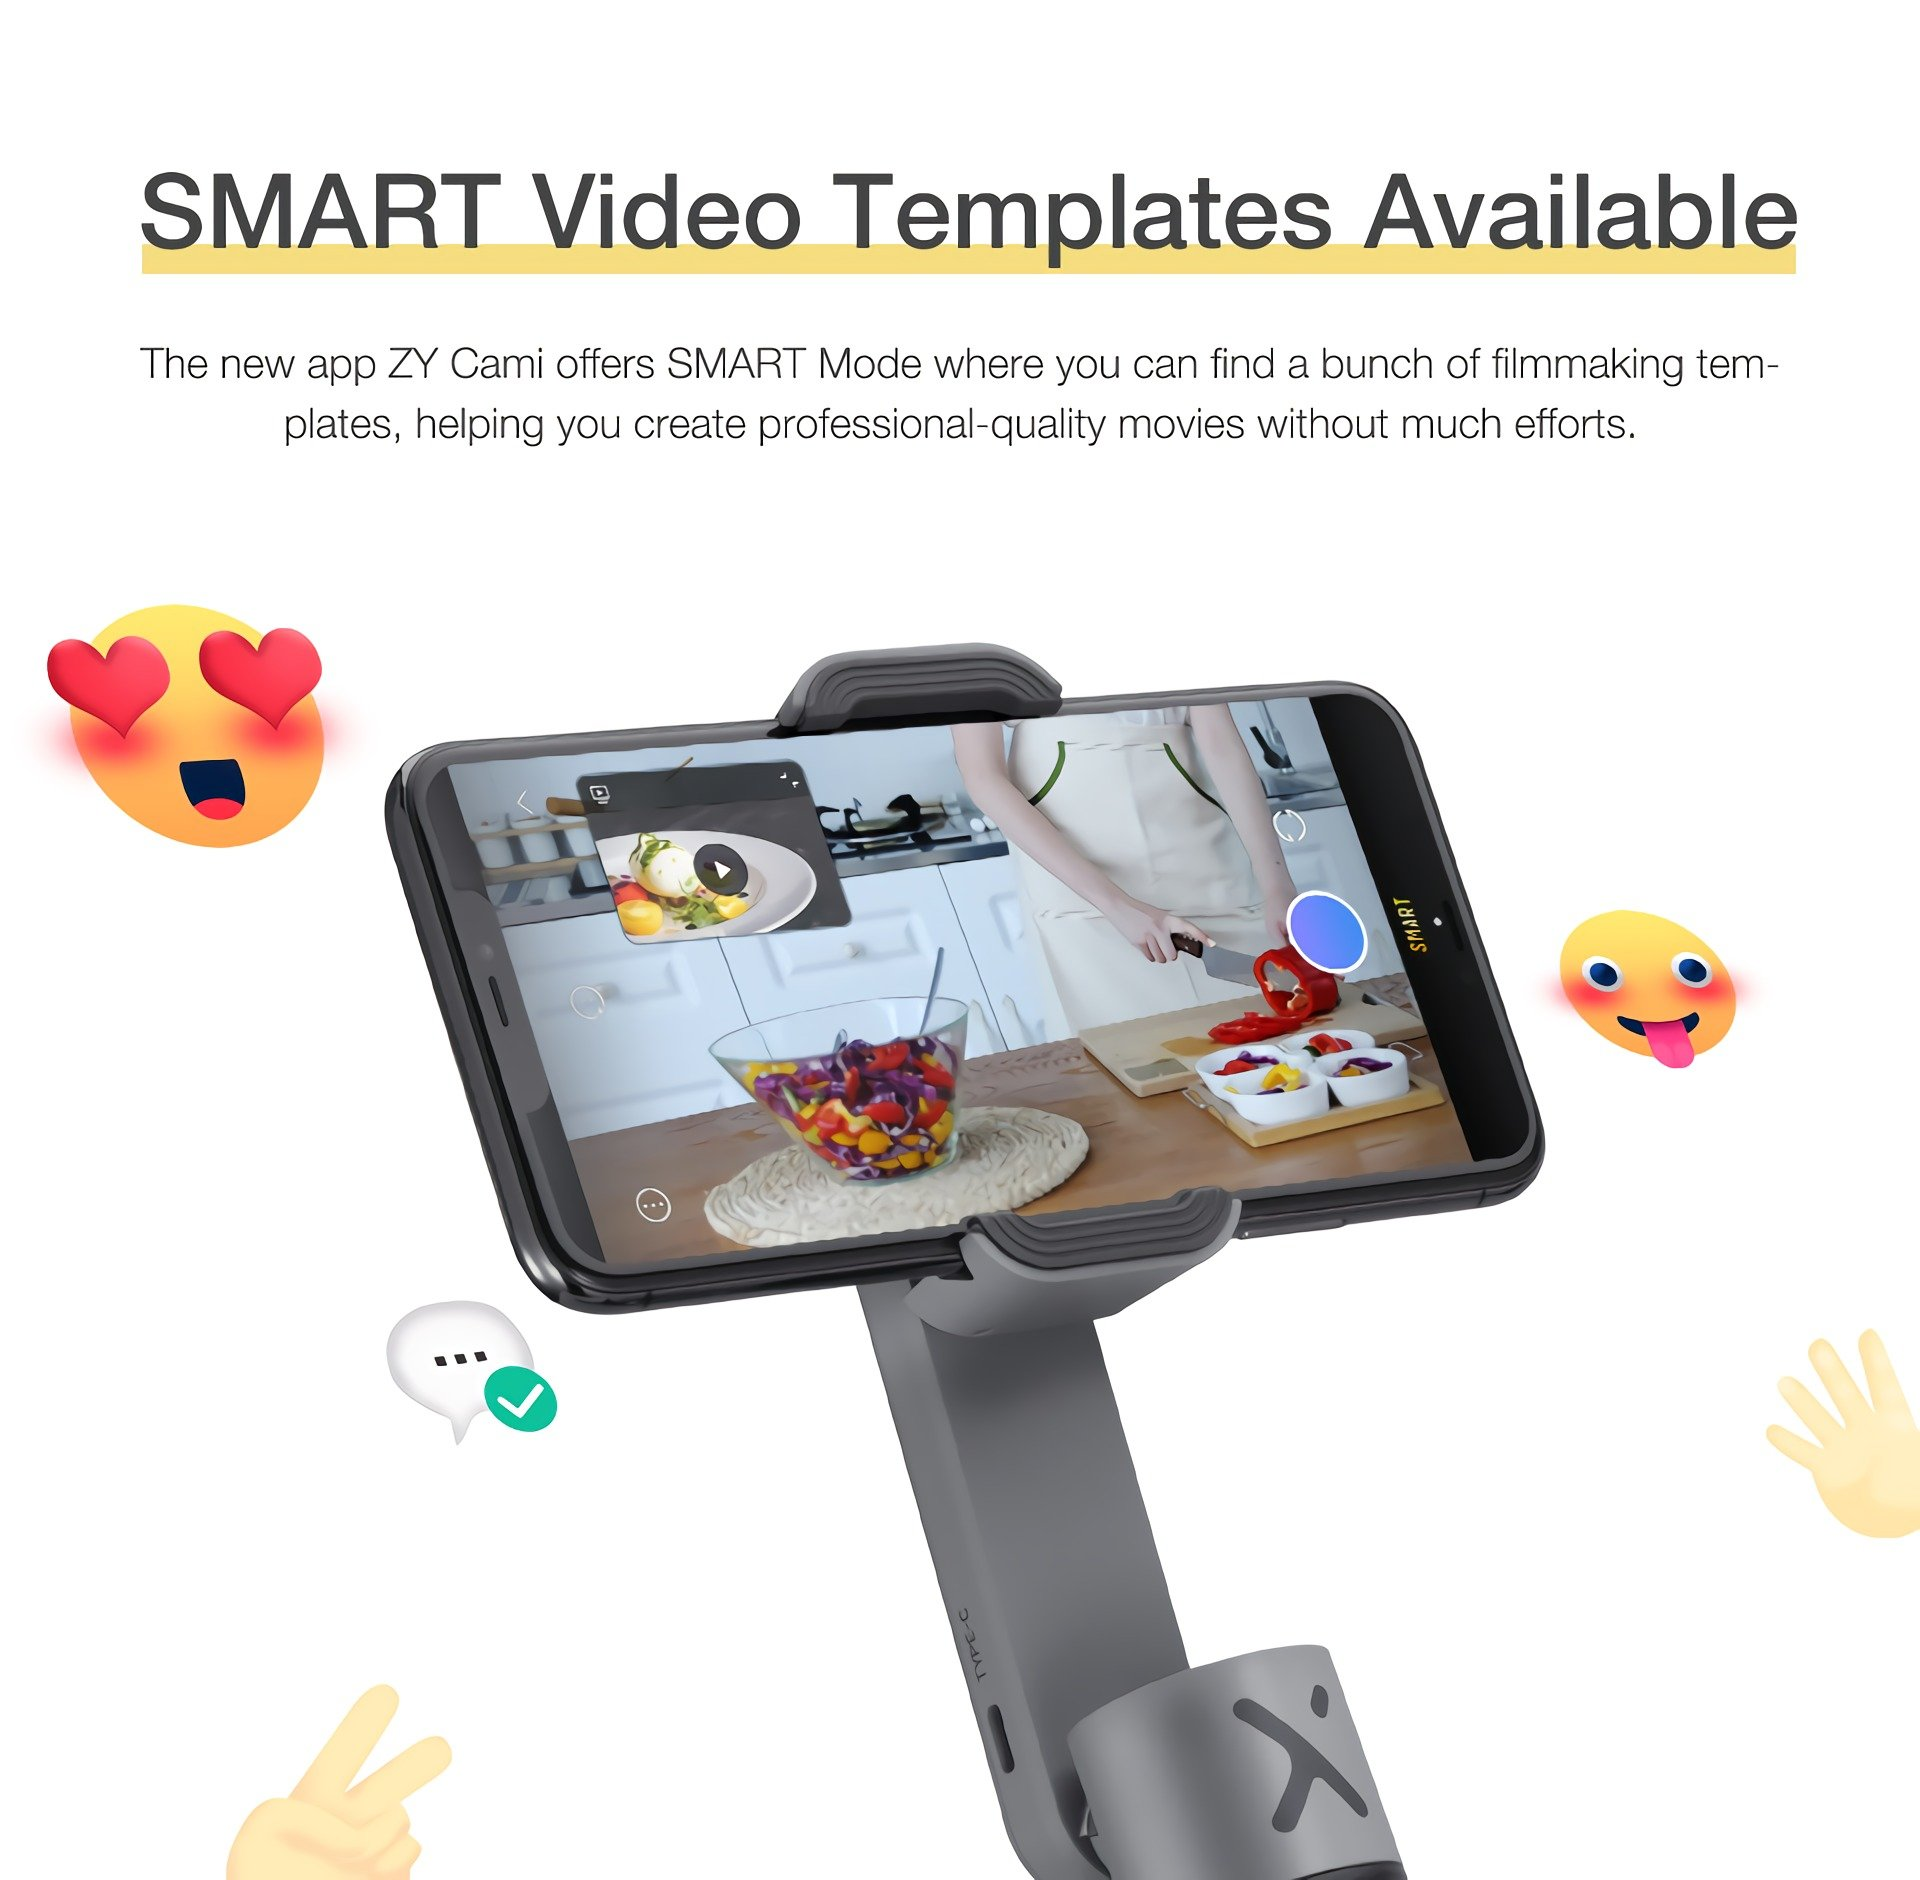 Smart Video Templates